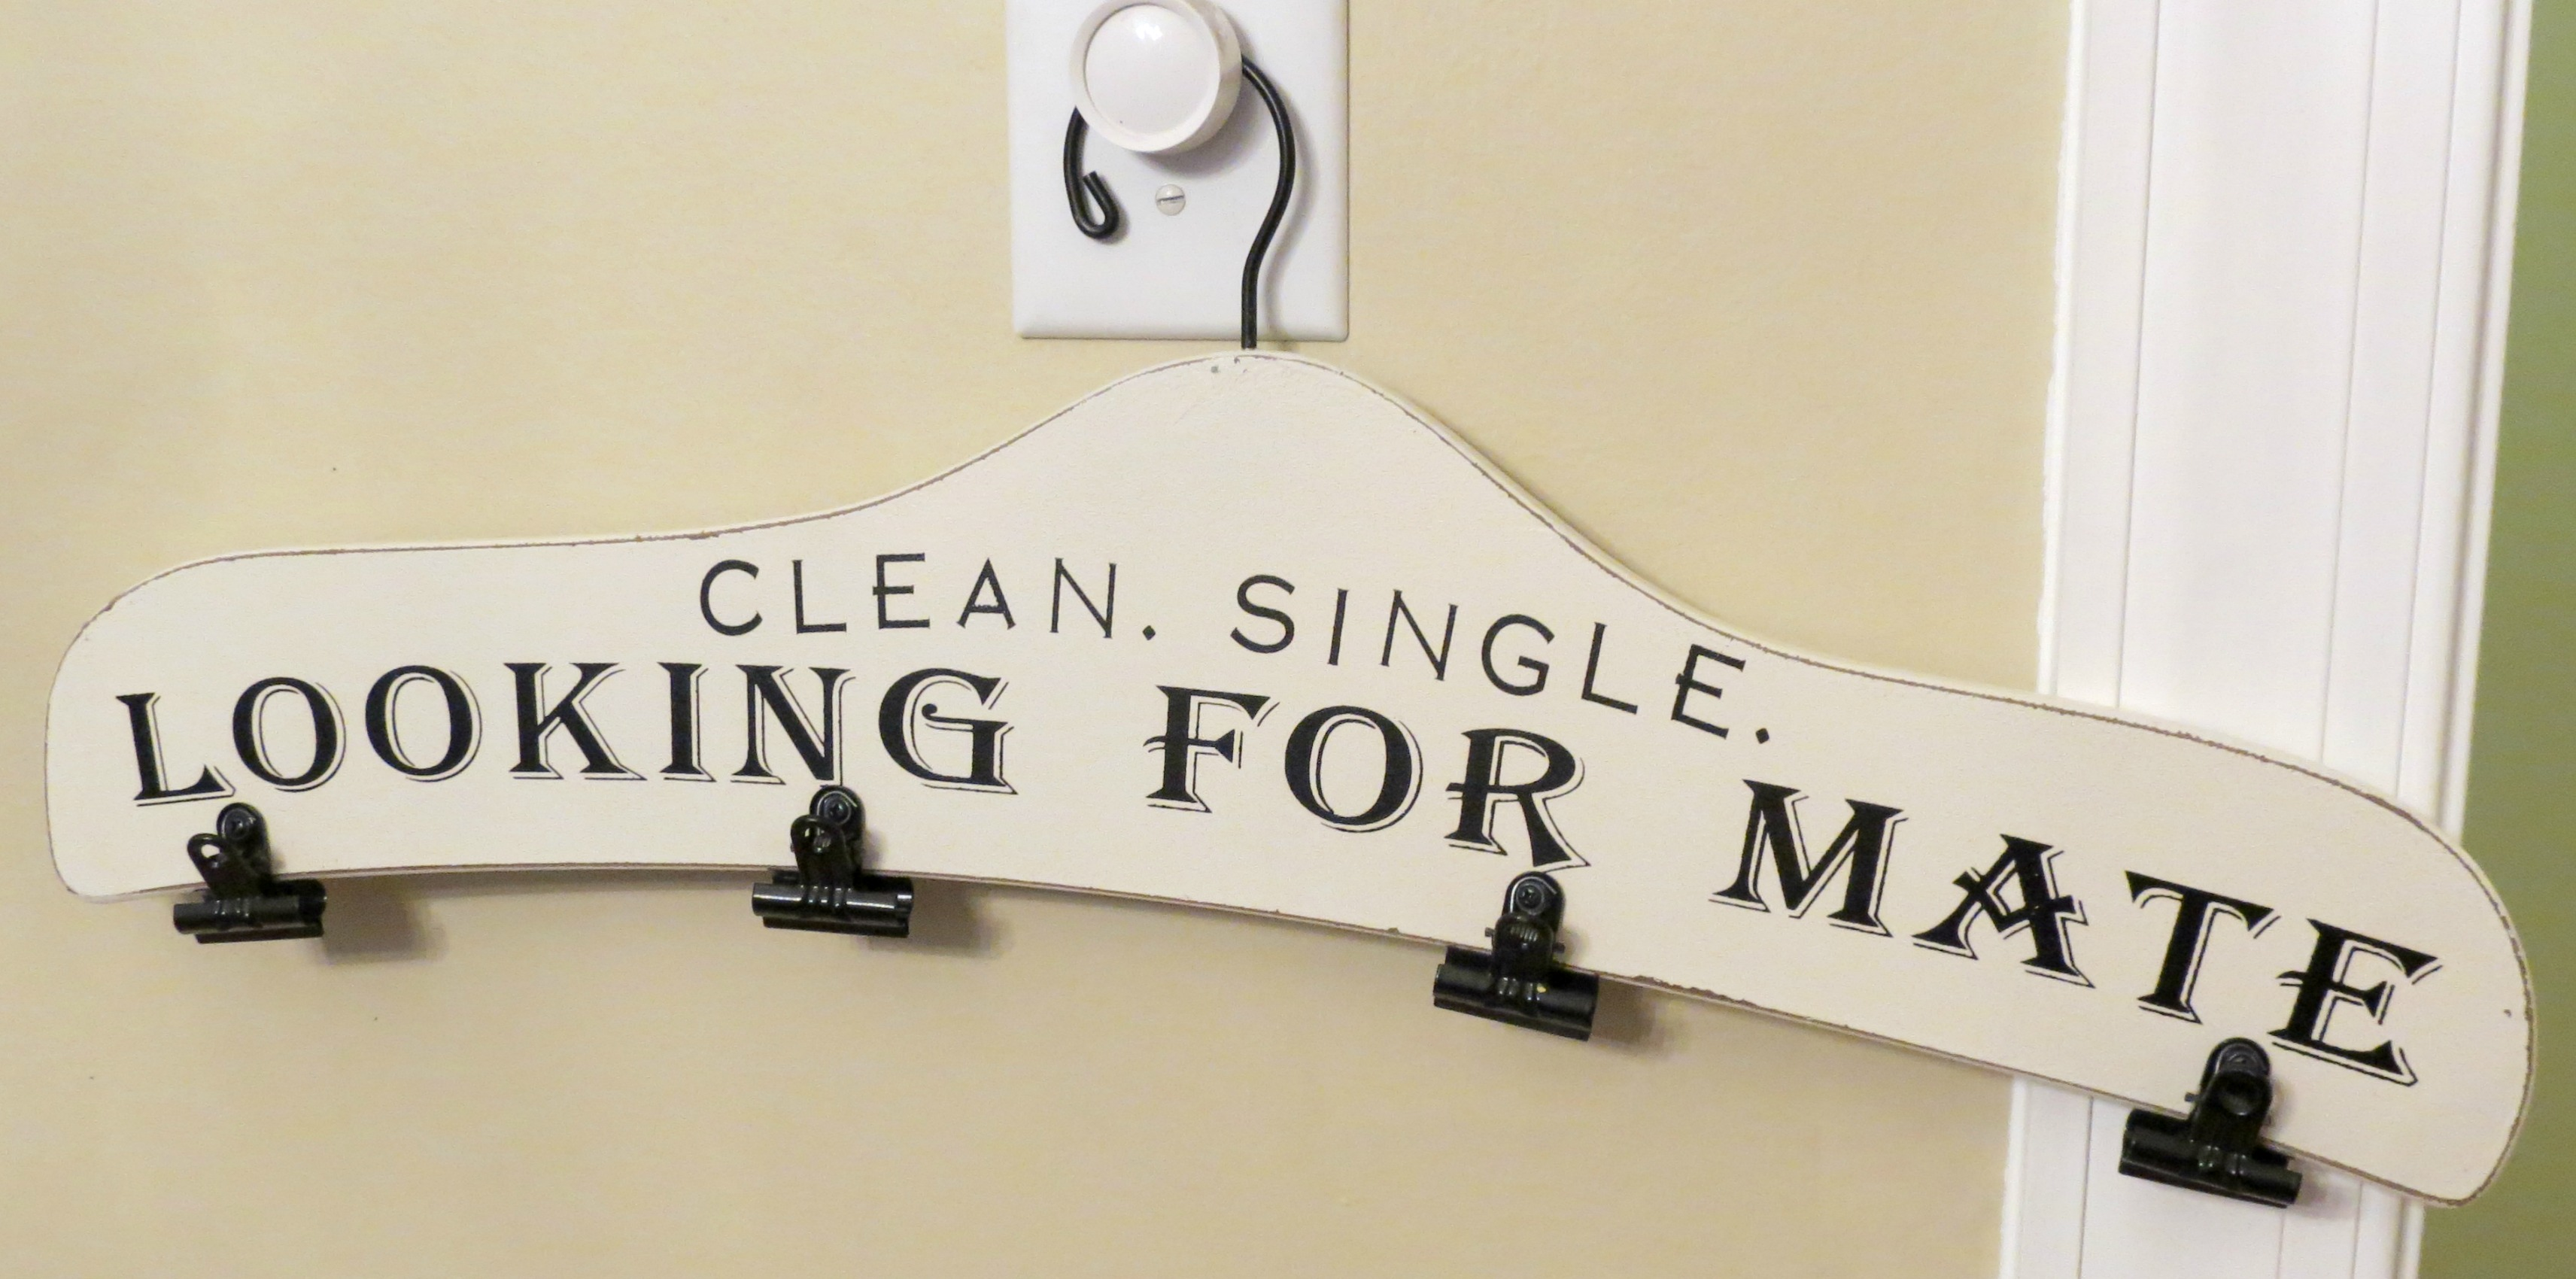 Cute Laundry Room Signs The Laundry Room Renovation Continues